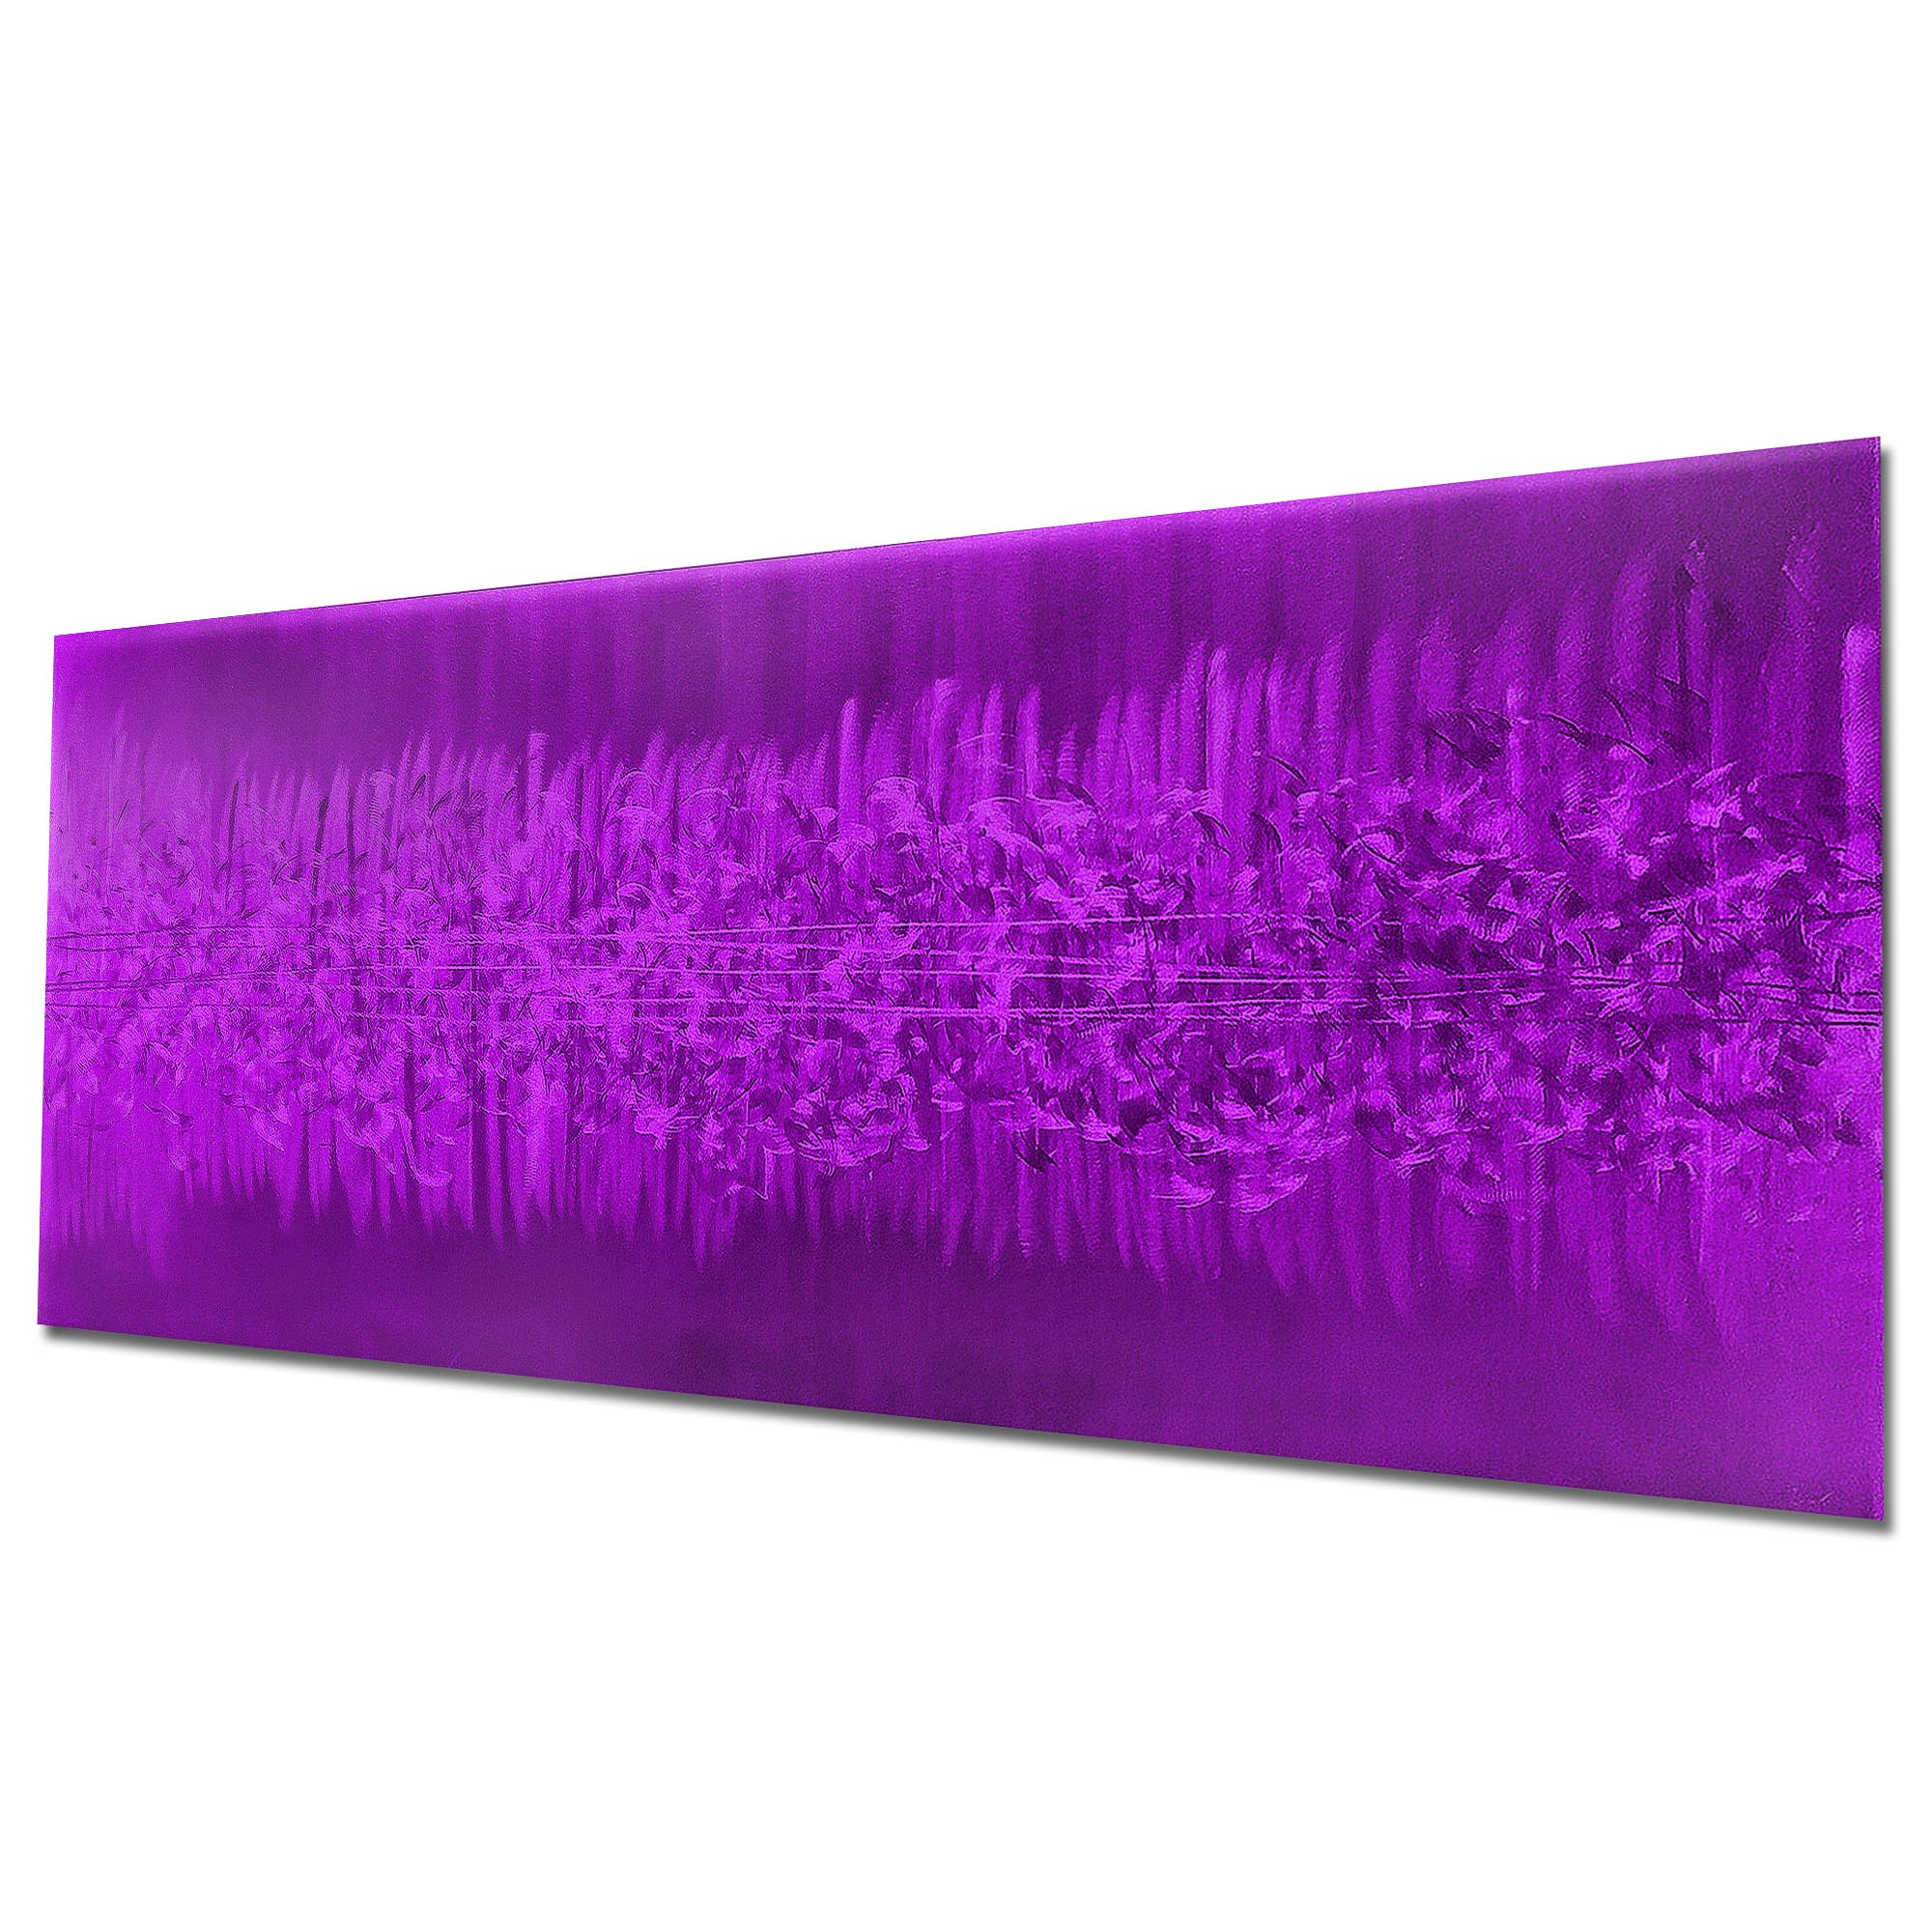 Static Purple by Helena Martin - Original Abstract Art on Ground and Painted Metal - Image 3